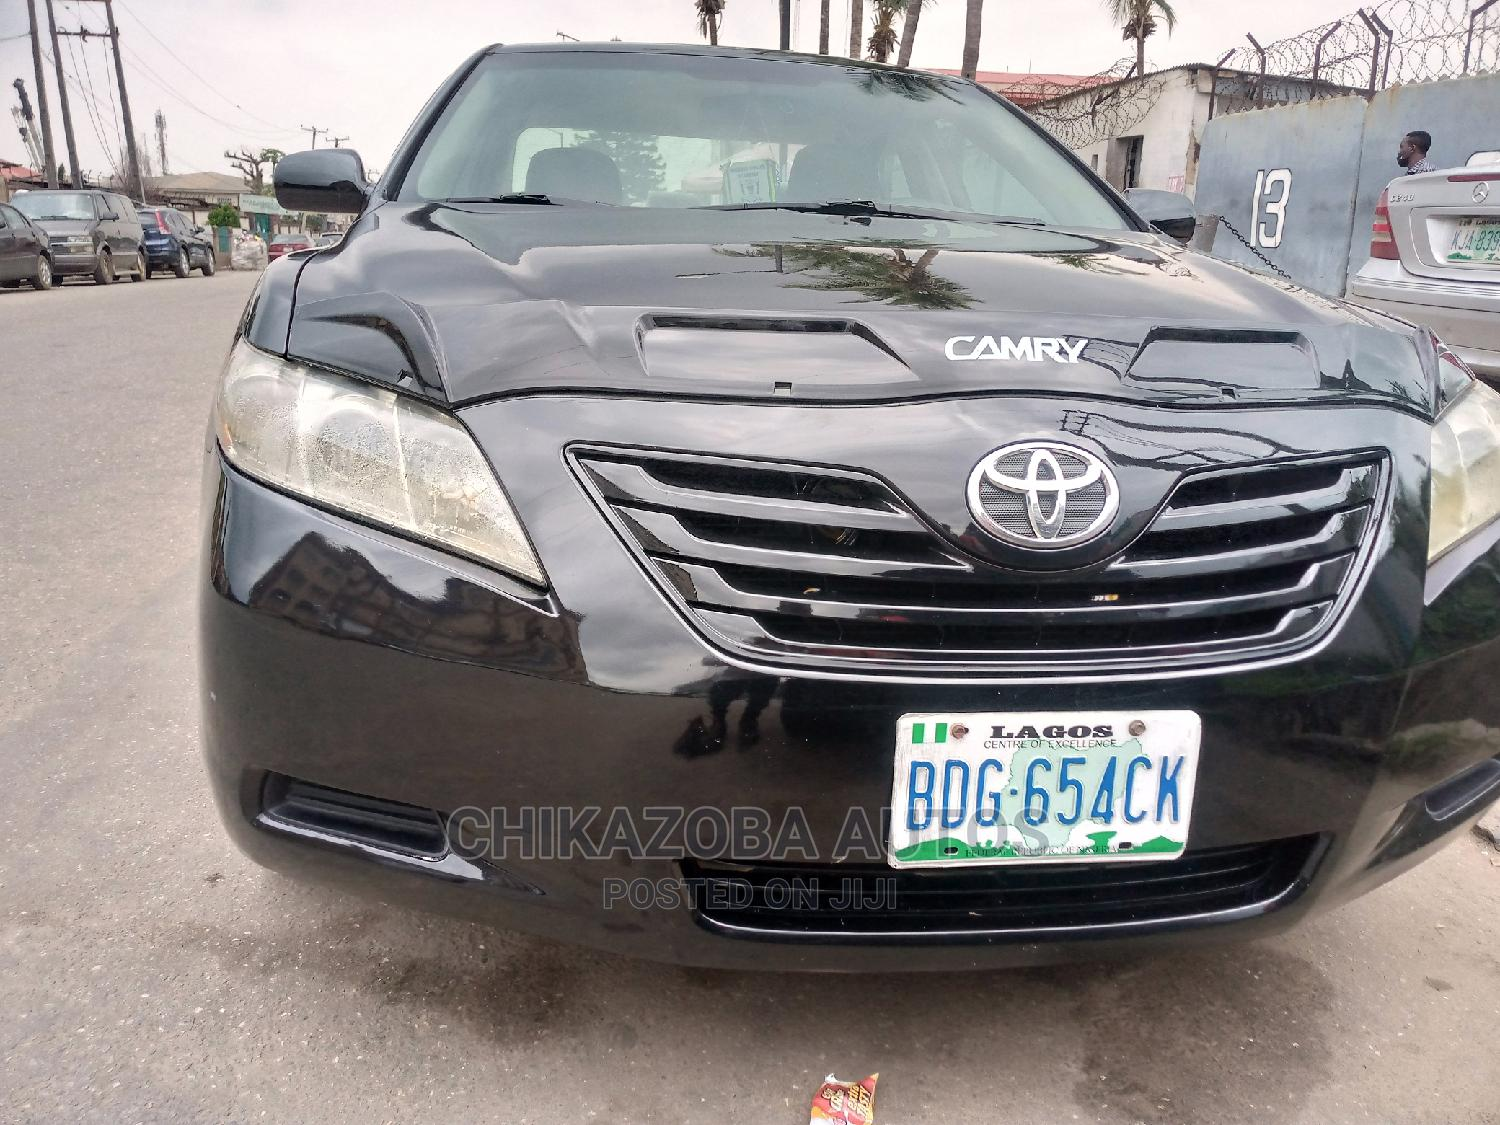 Archive: Toyota Camry 2008 Black